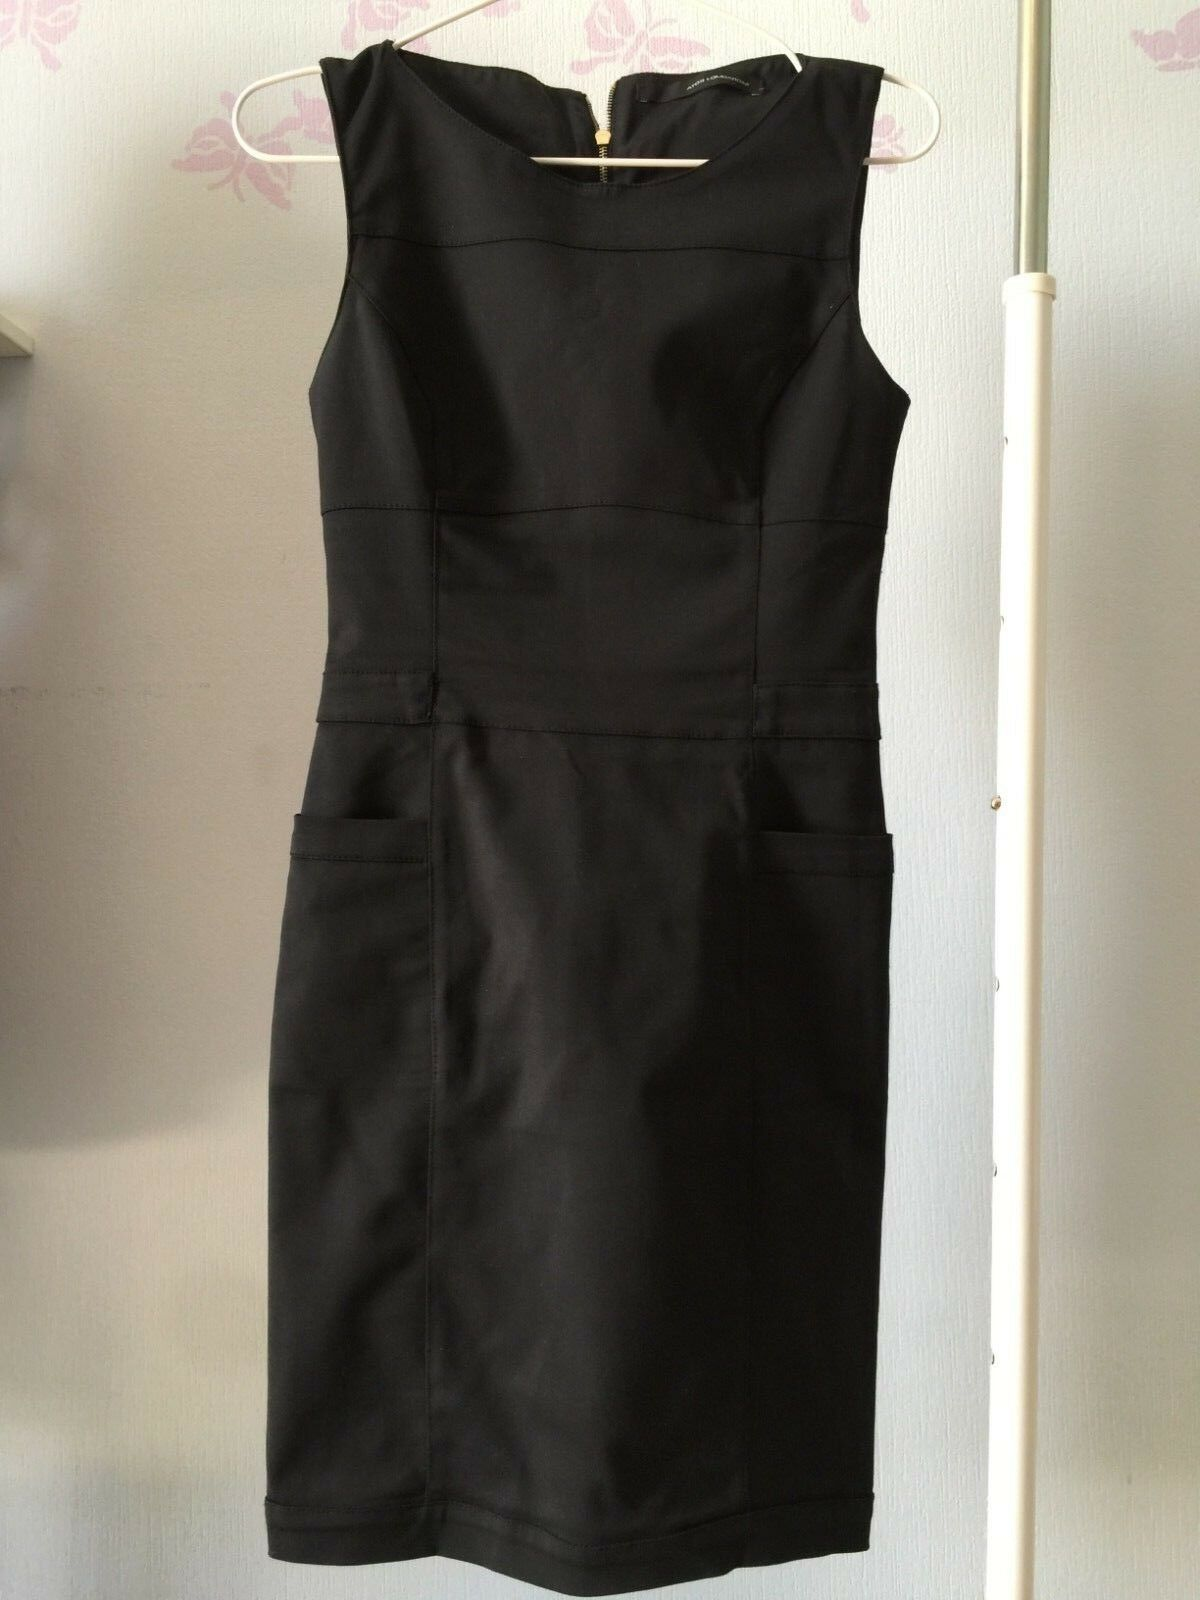 Authentic dress ATOS LOMBARDINI. Pre-owned. Good condition.